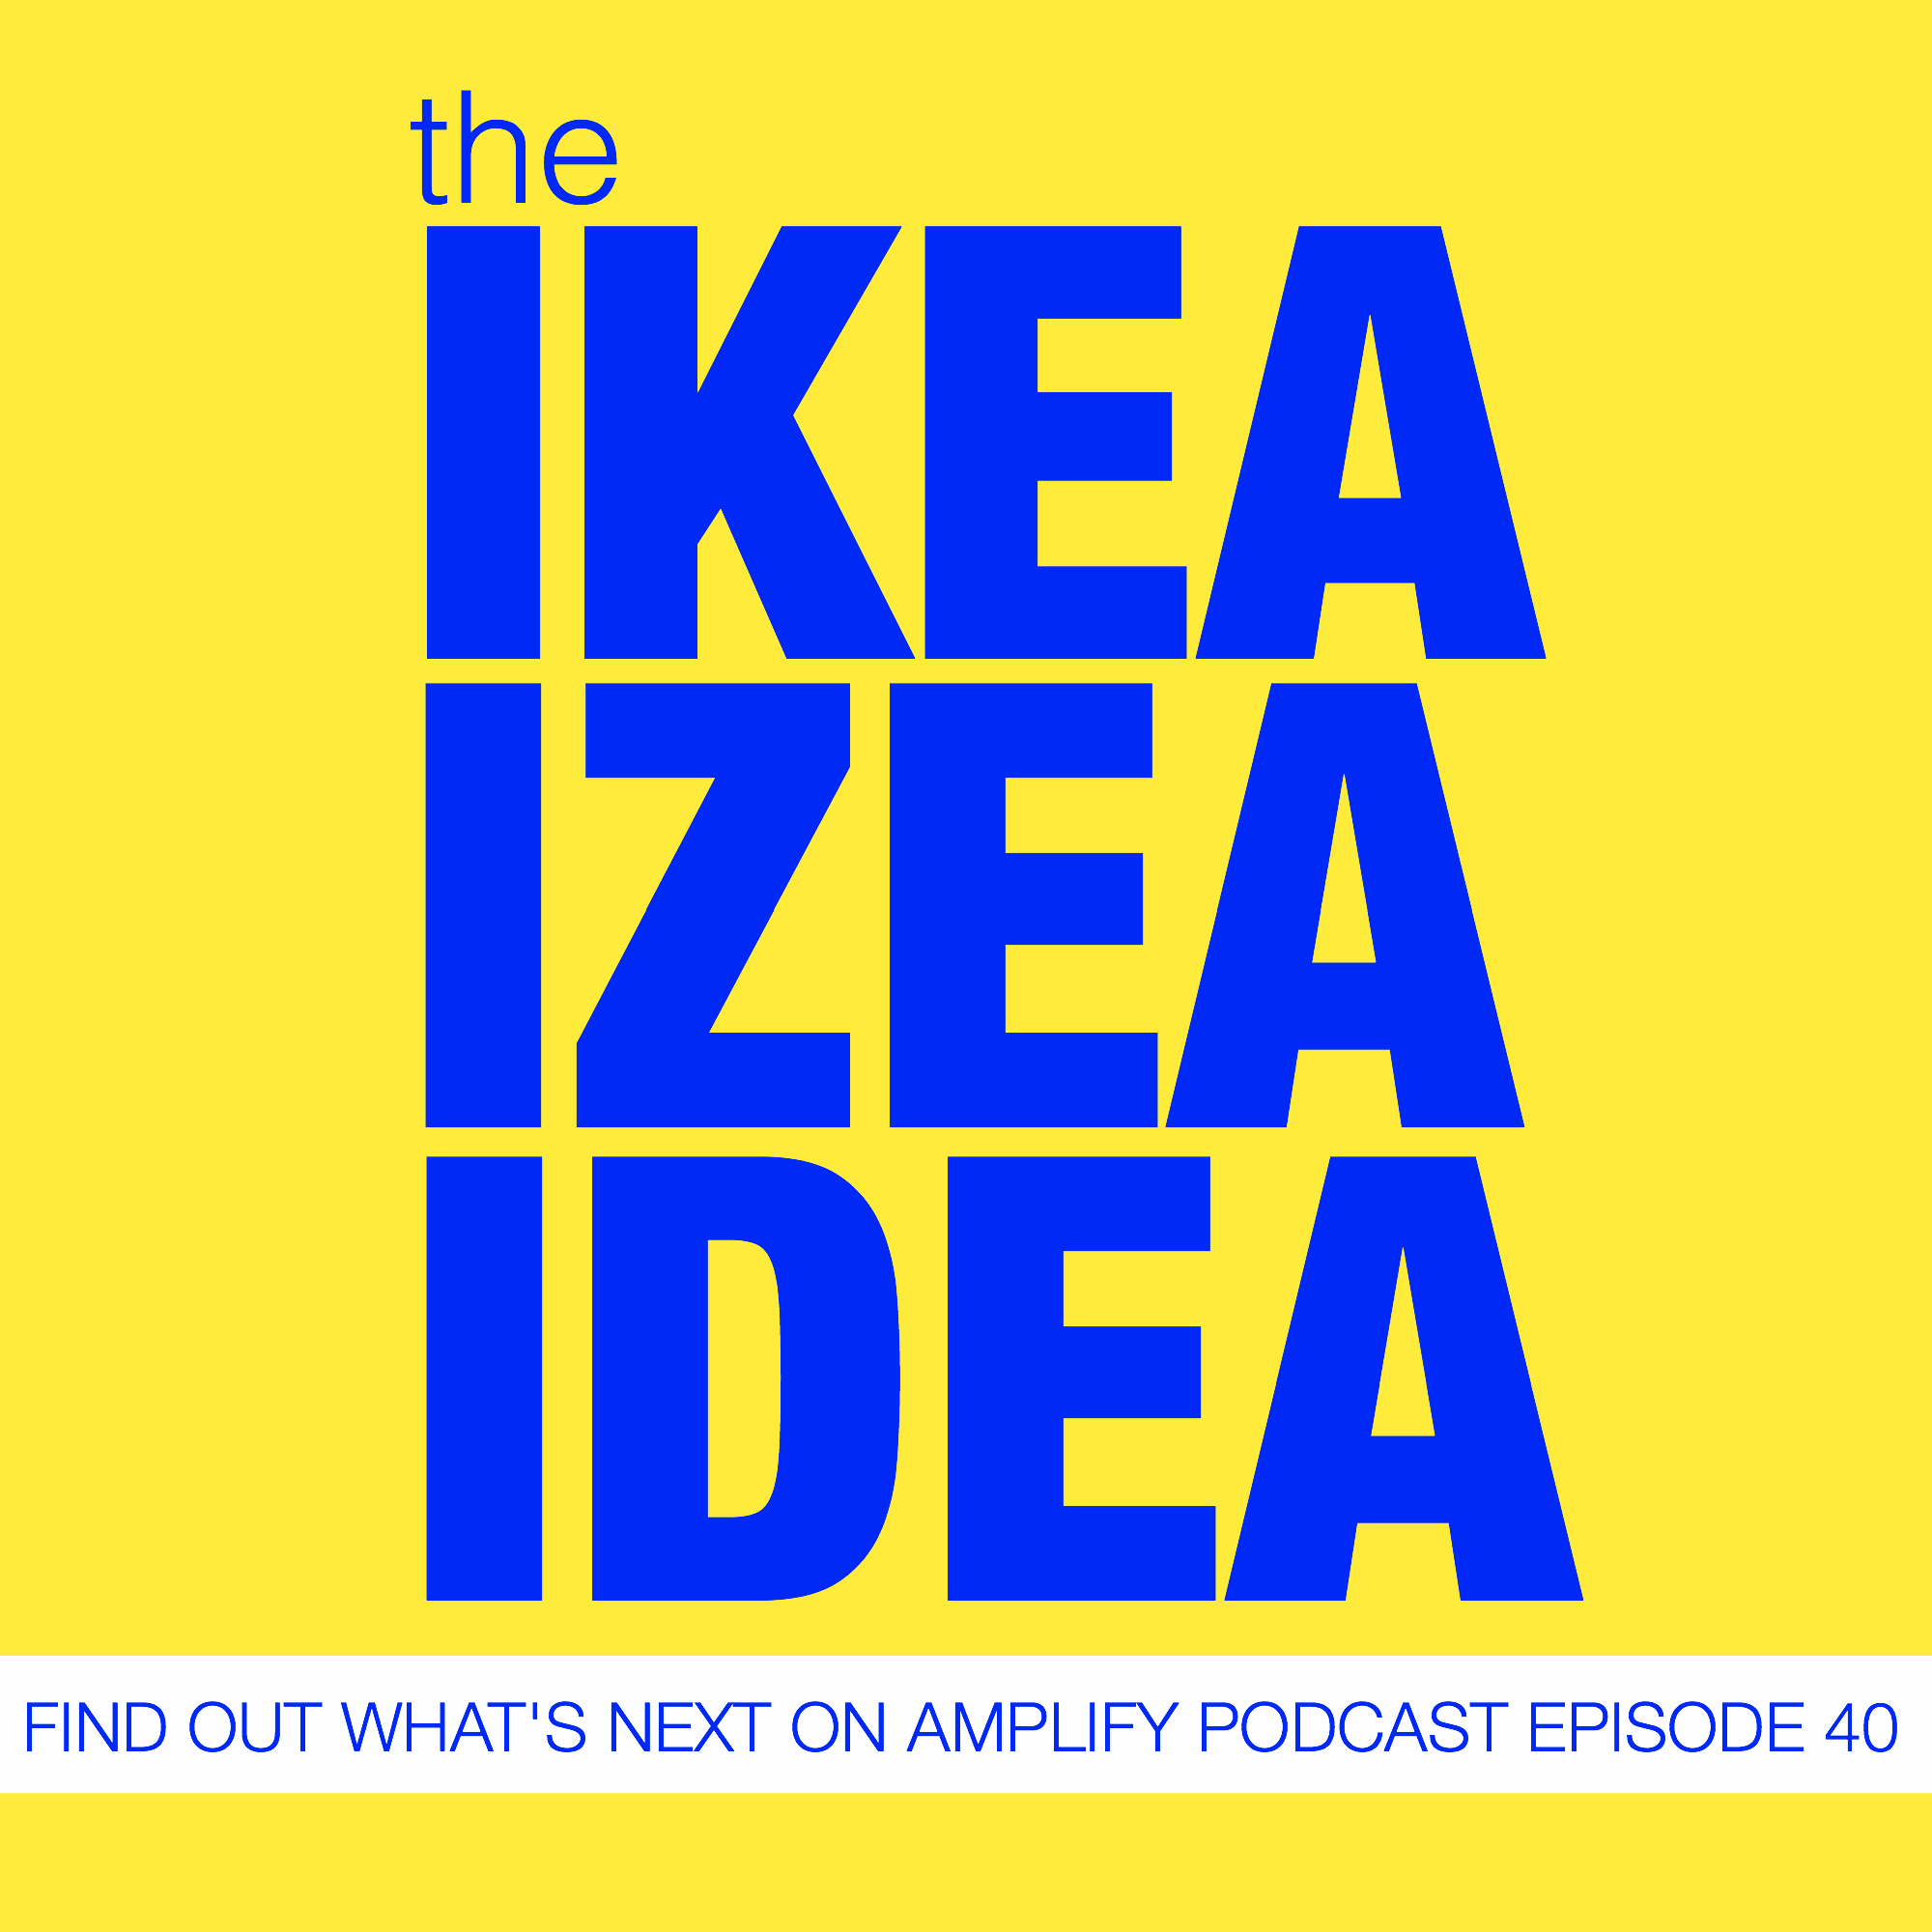 The IKEA IZEA Idea